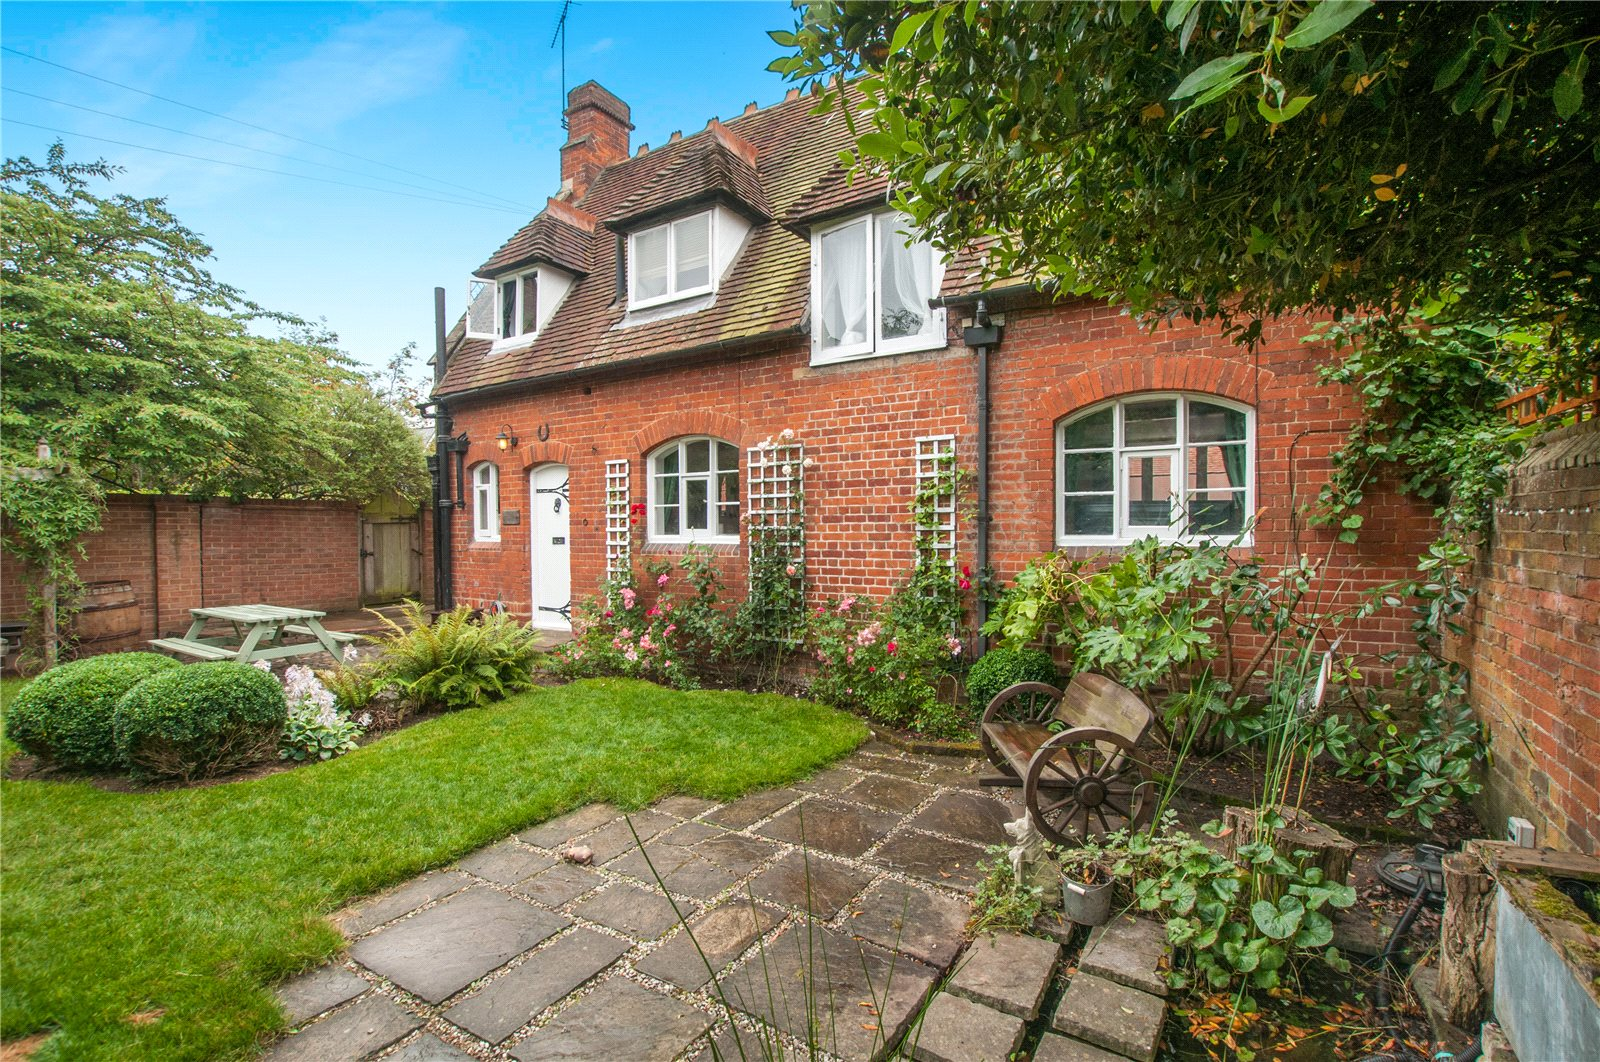 2 Bedrooms Detached House for sale in Boyn Hill Avenue, Maidenhead, Berkshire, SL6